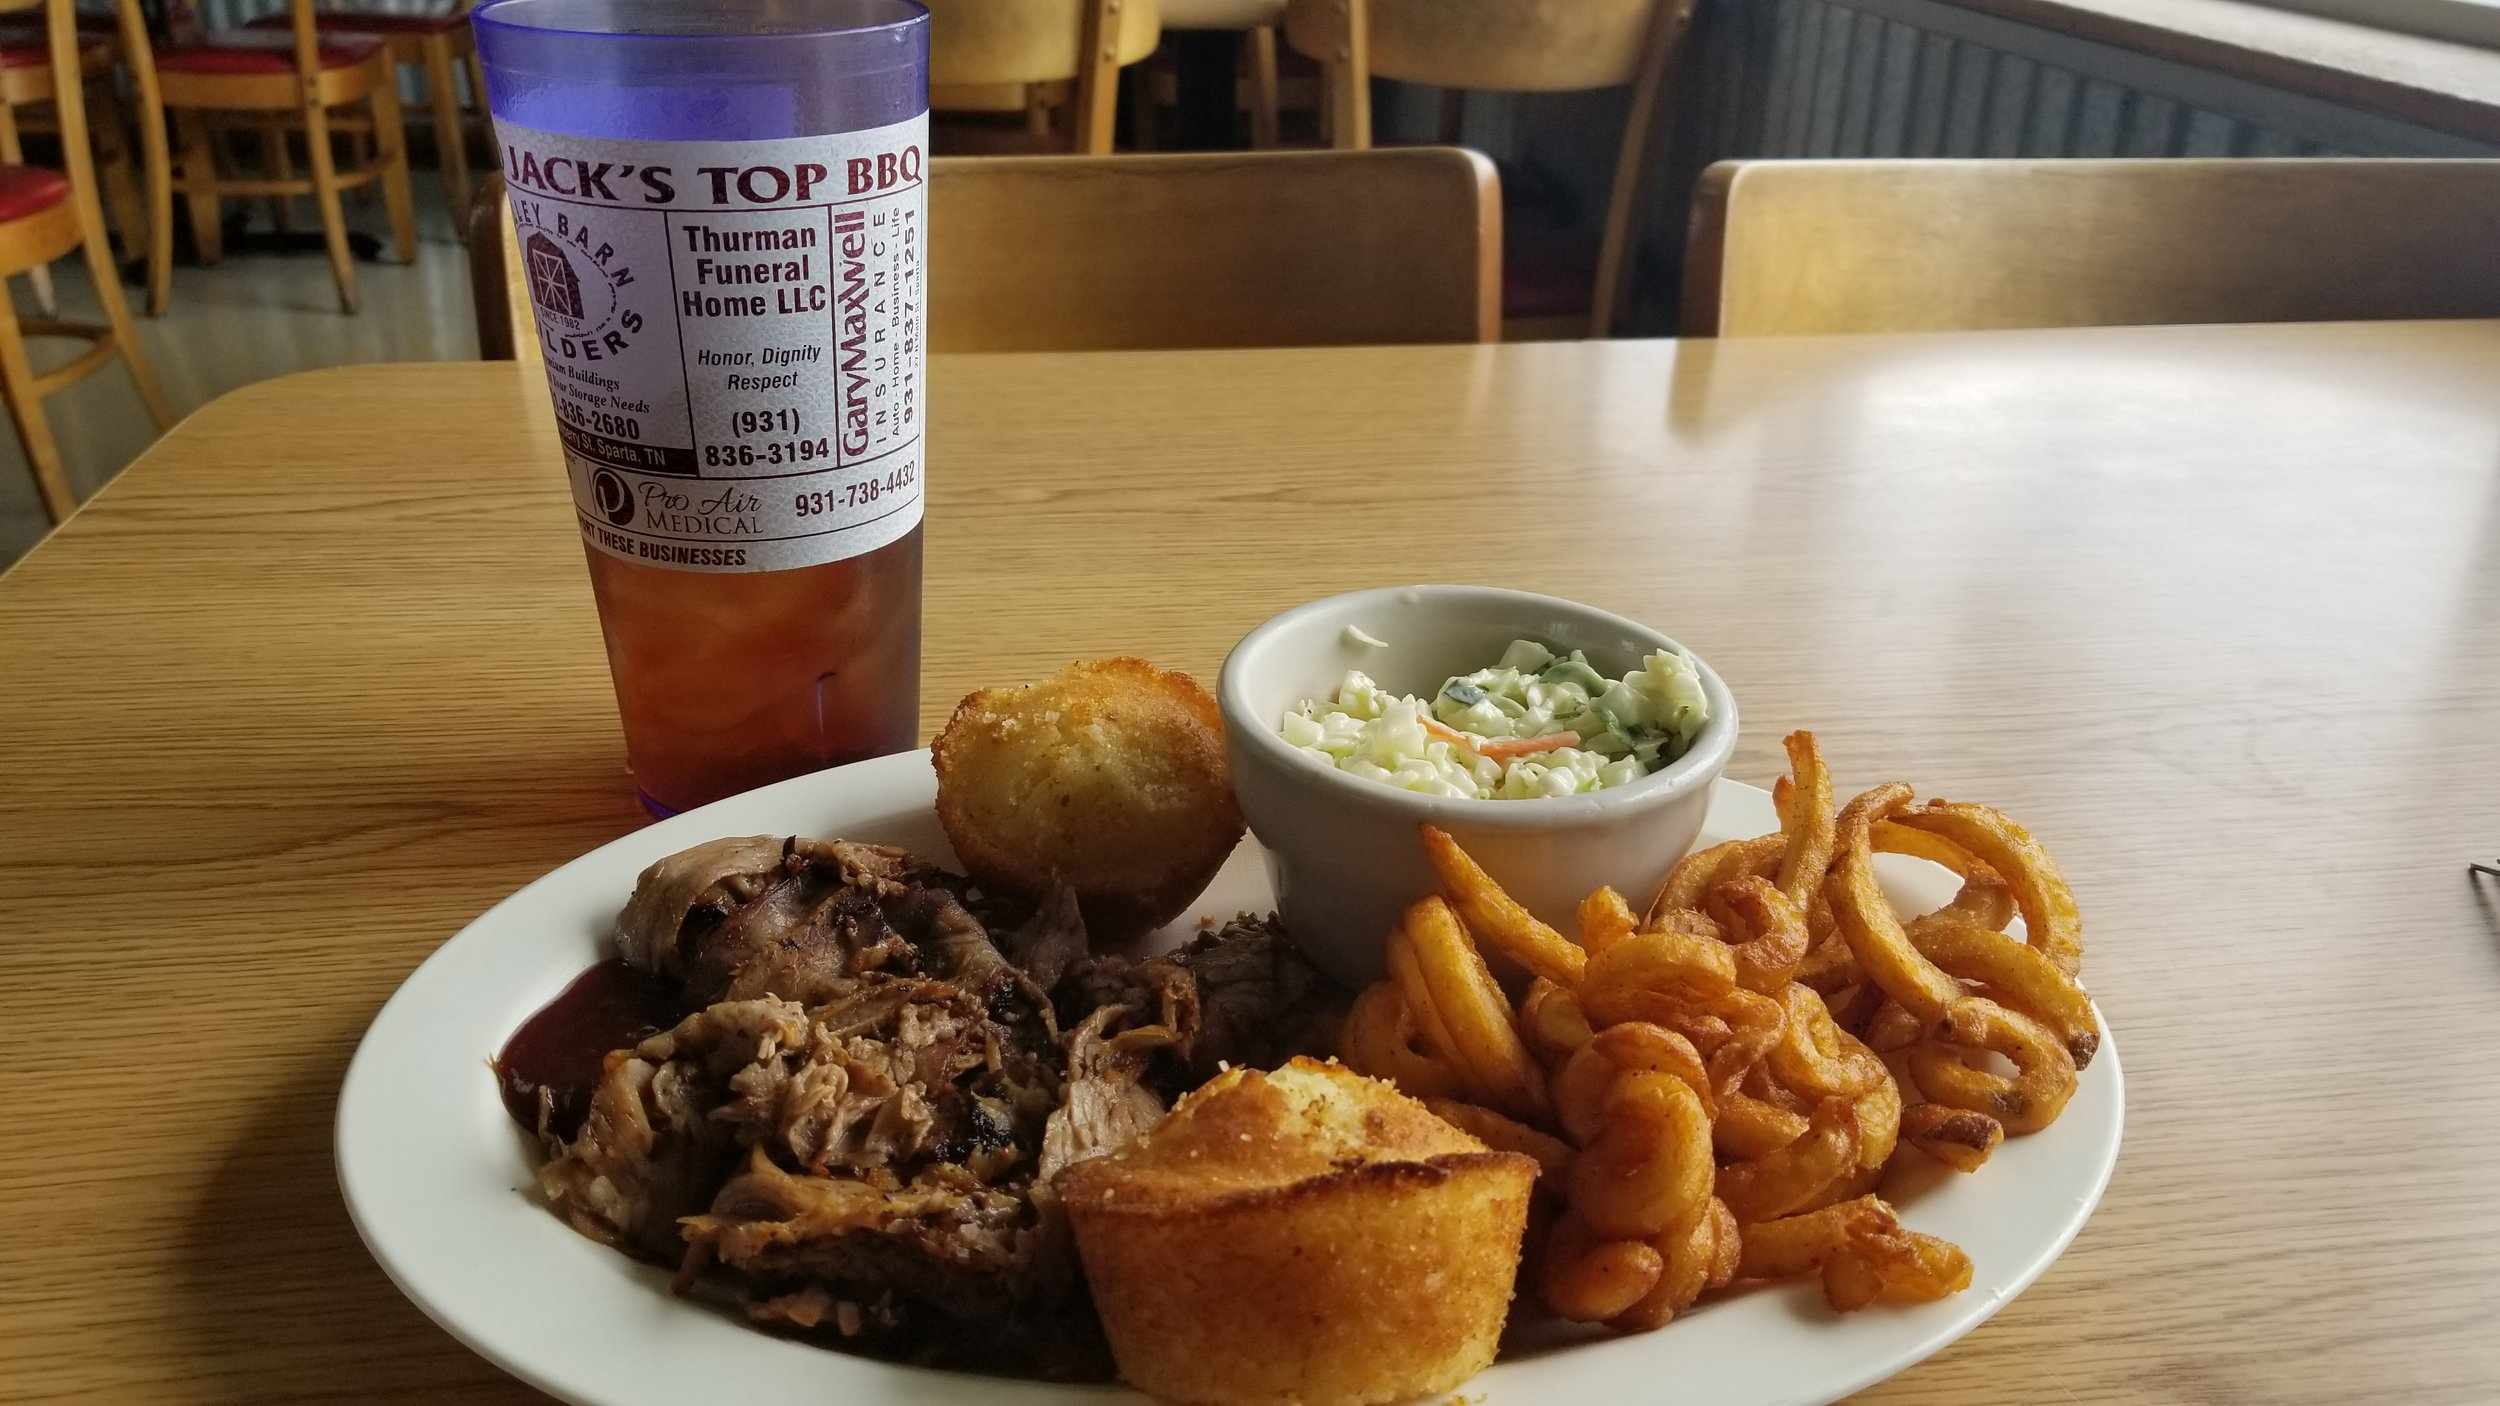 The thinly sliced beef brisket at Jack's Top BBQ is so tender it almost melts in your mouth.